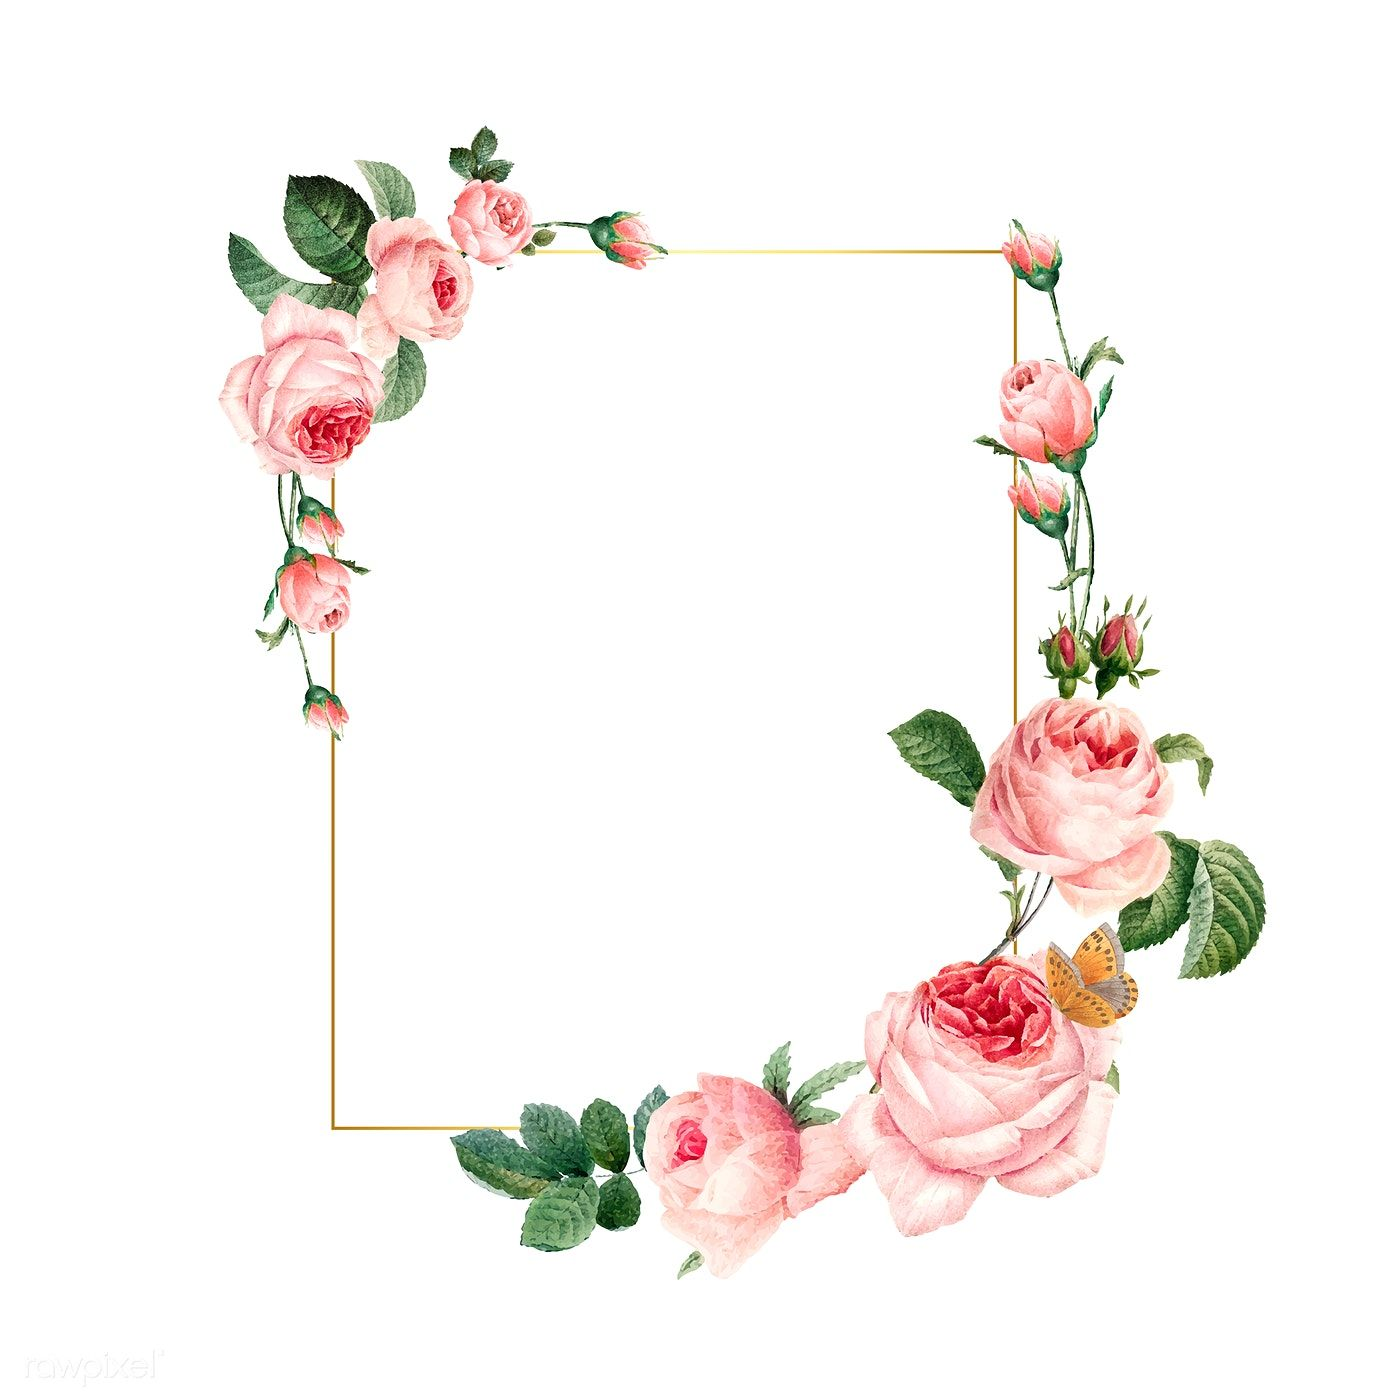 Blank Rectangle Pink Roses Frame On White Background Vector Free Image By Rawpixel Com Busbus Rose Frame Pink And White Background Pink Roses